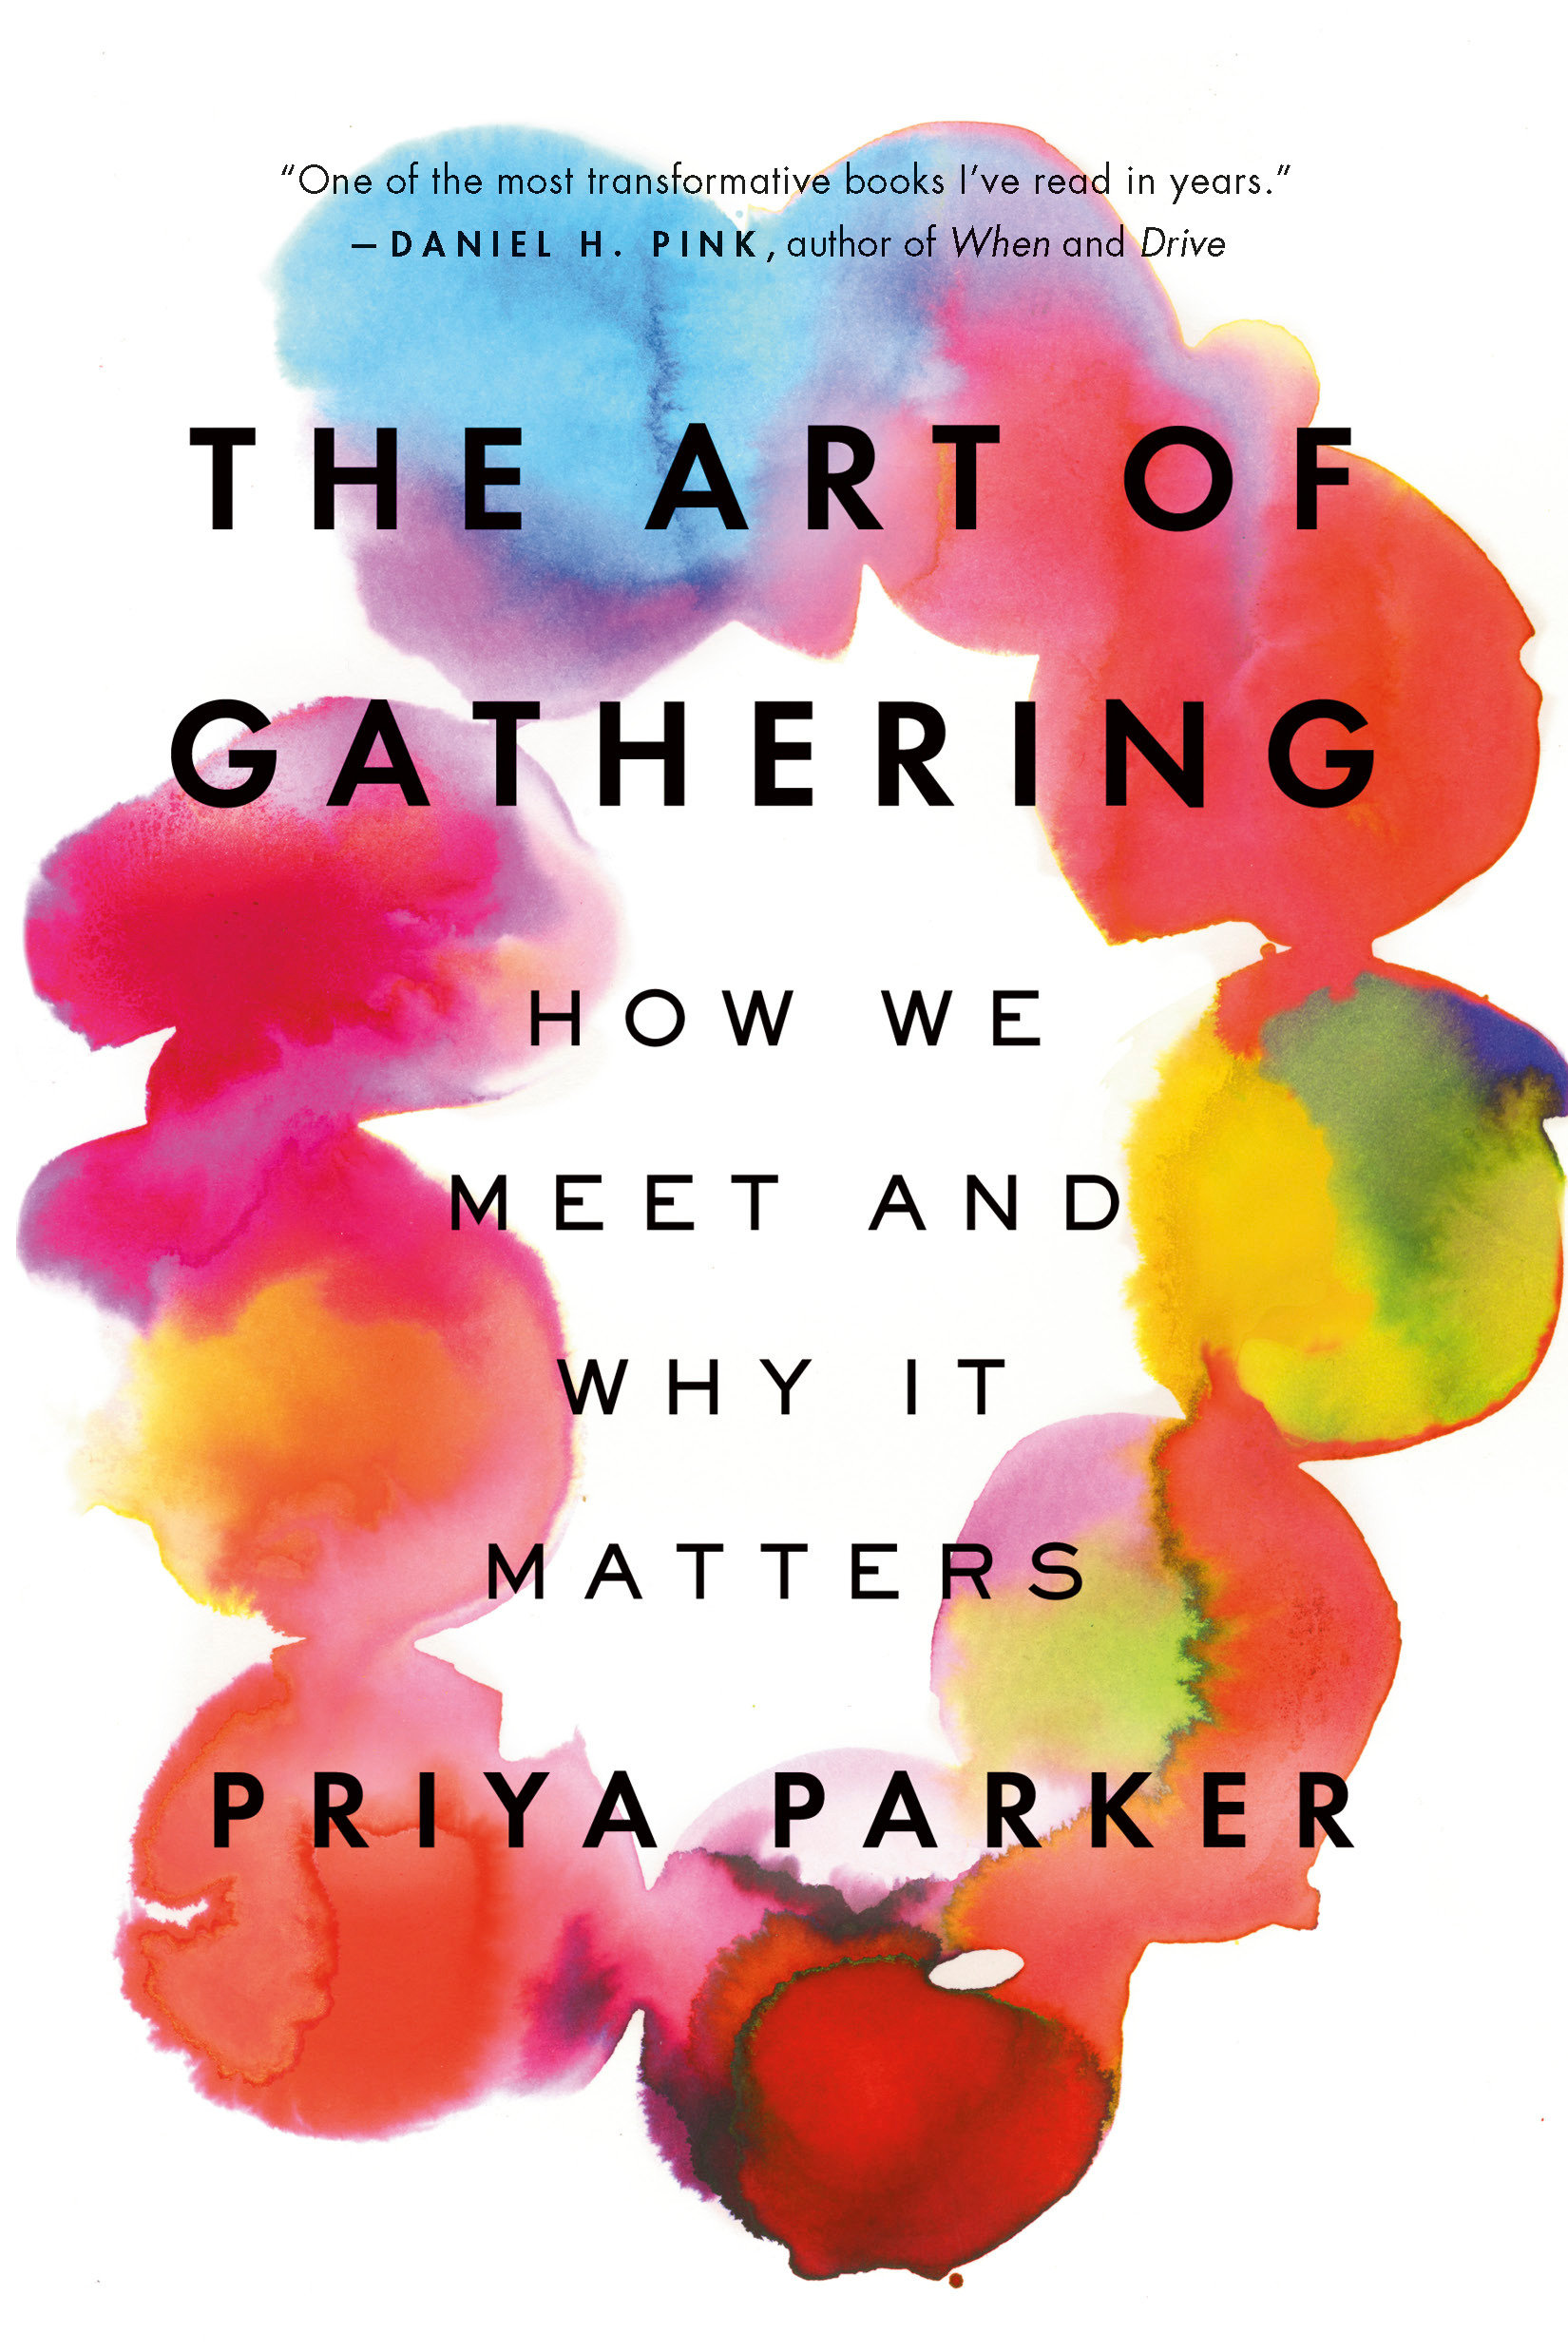 The Art of Gathering How We Meet and Why It Matters